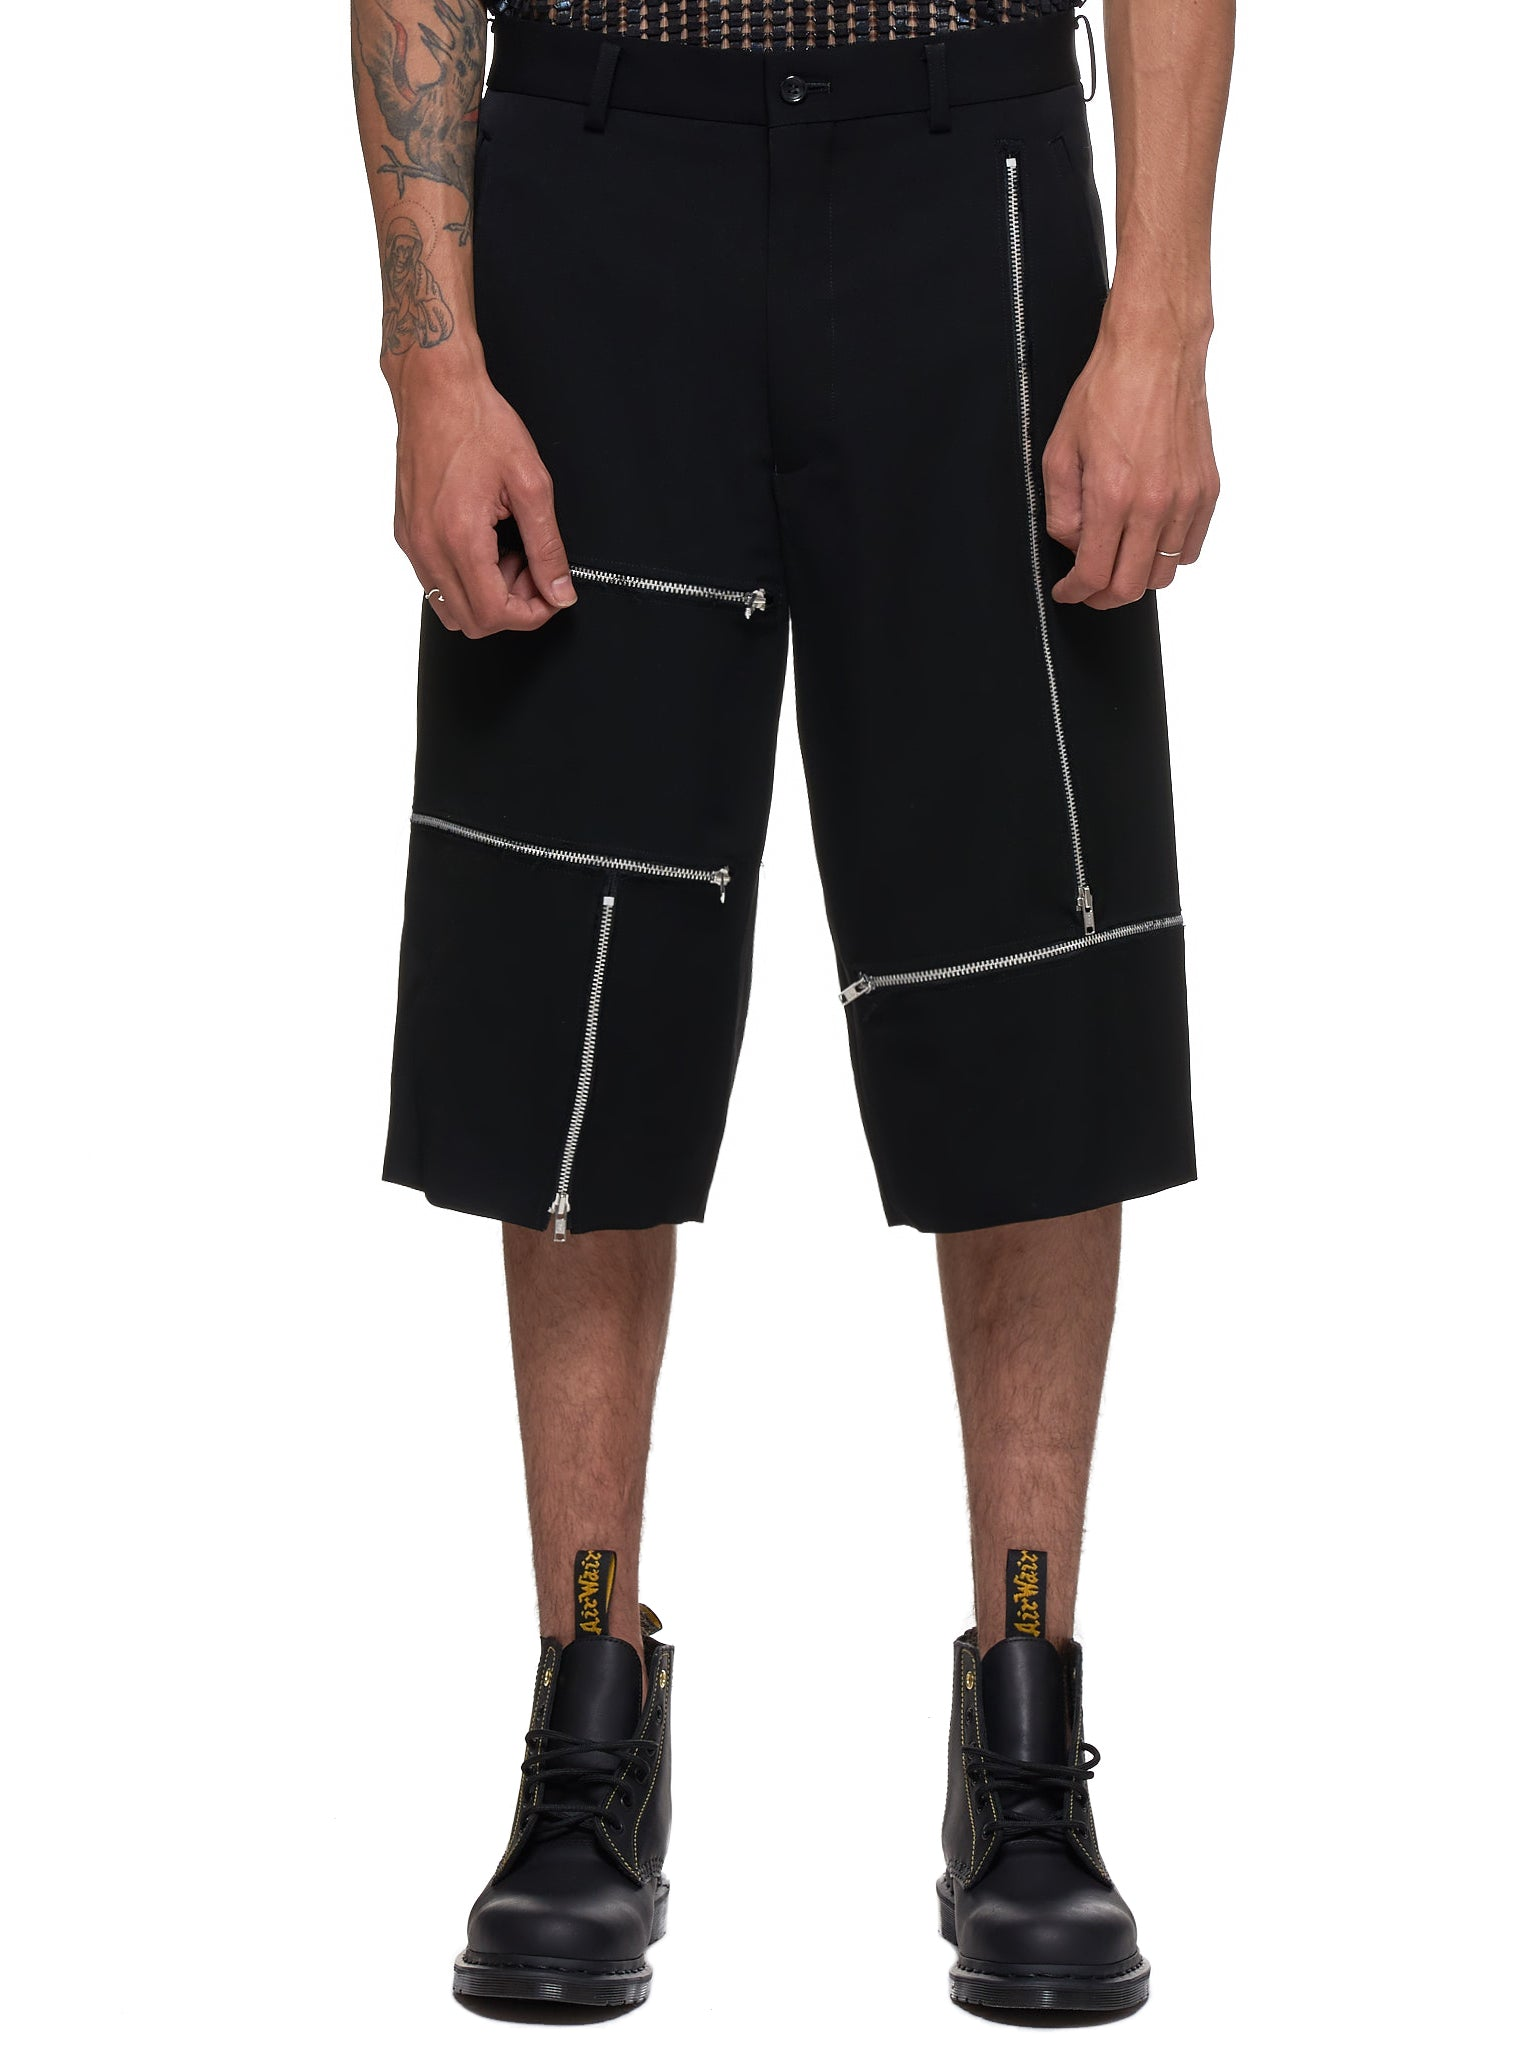 Zippered Shorts (PD-P012-051-BLACK)